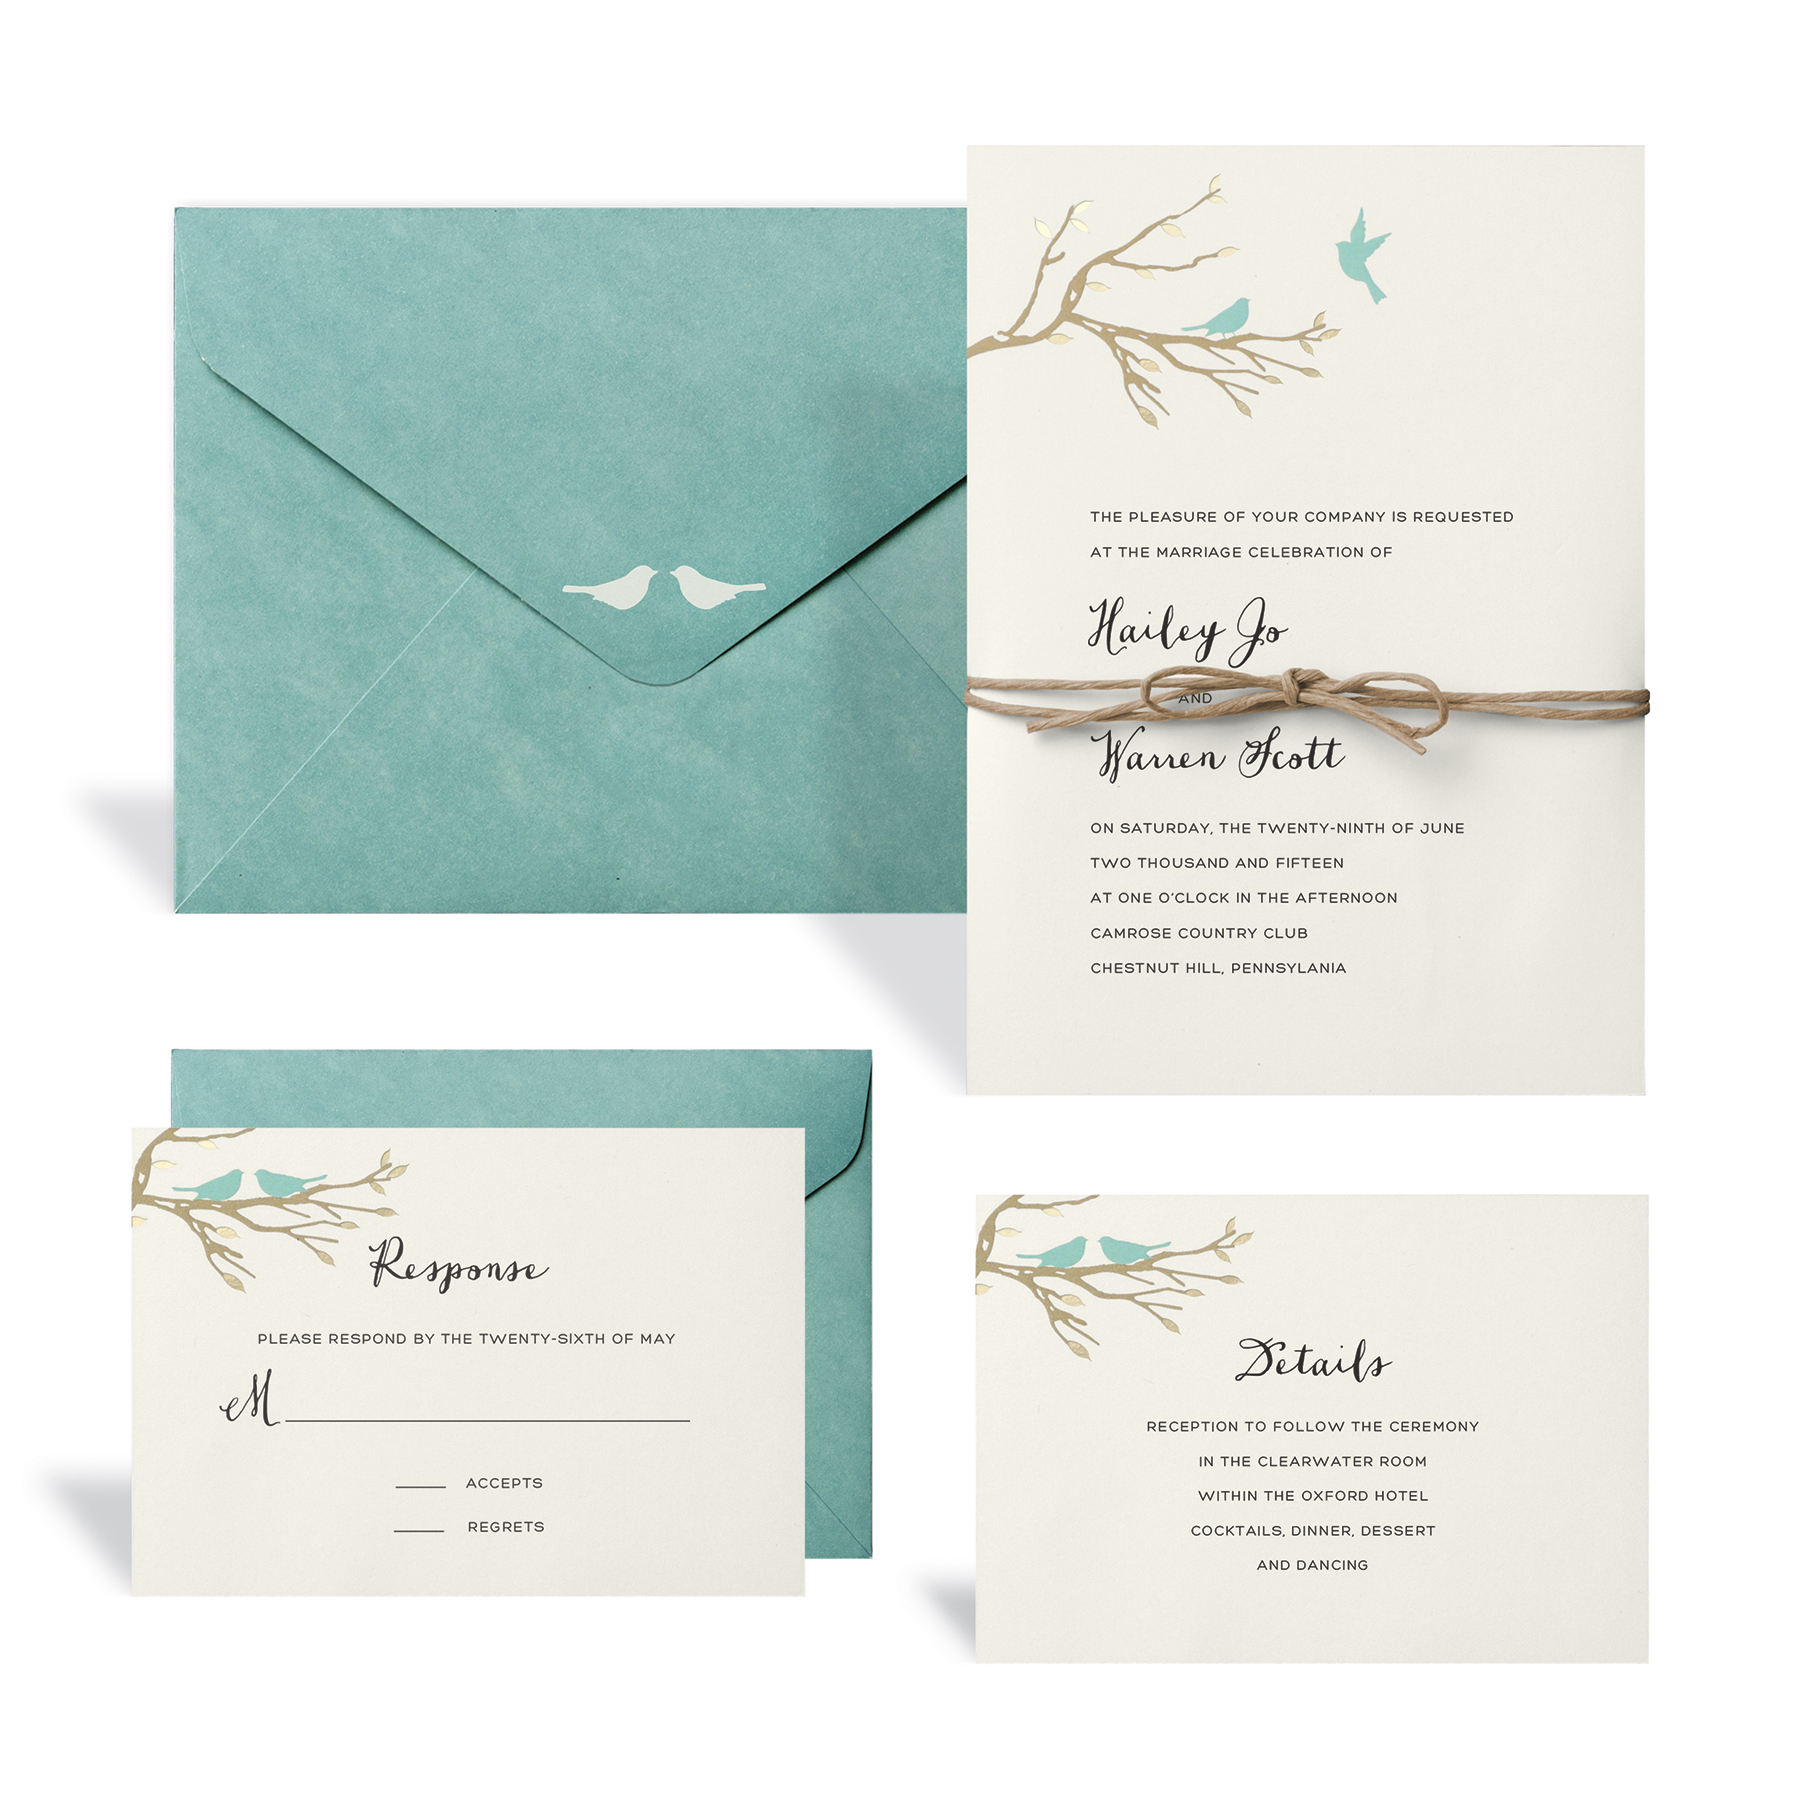 Buy the Love Birds Wedding Invitation Kit By Celebrate It at Michaels